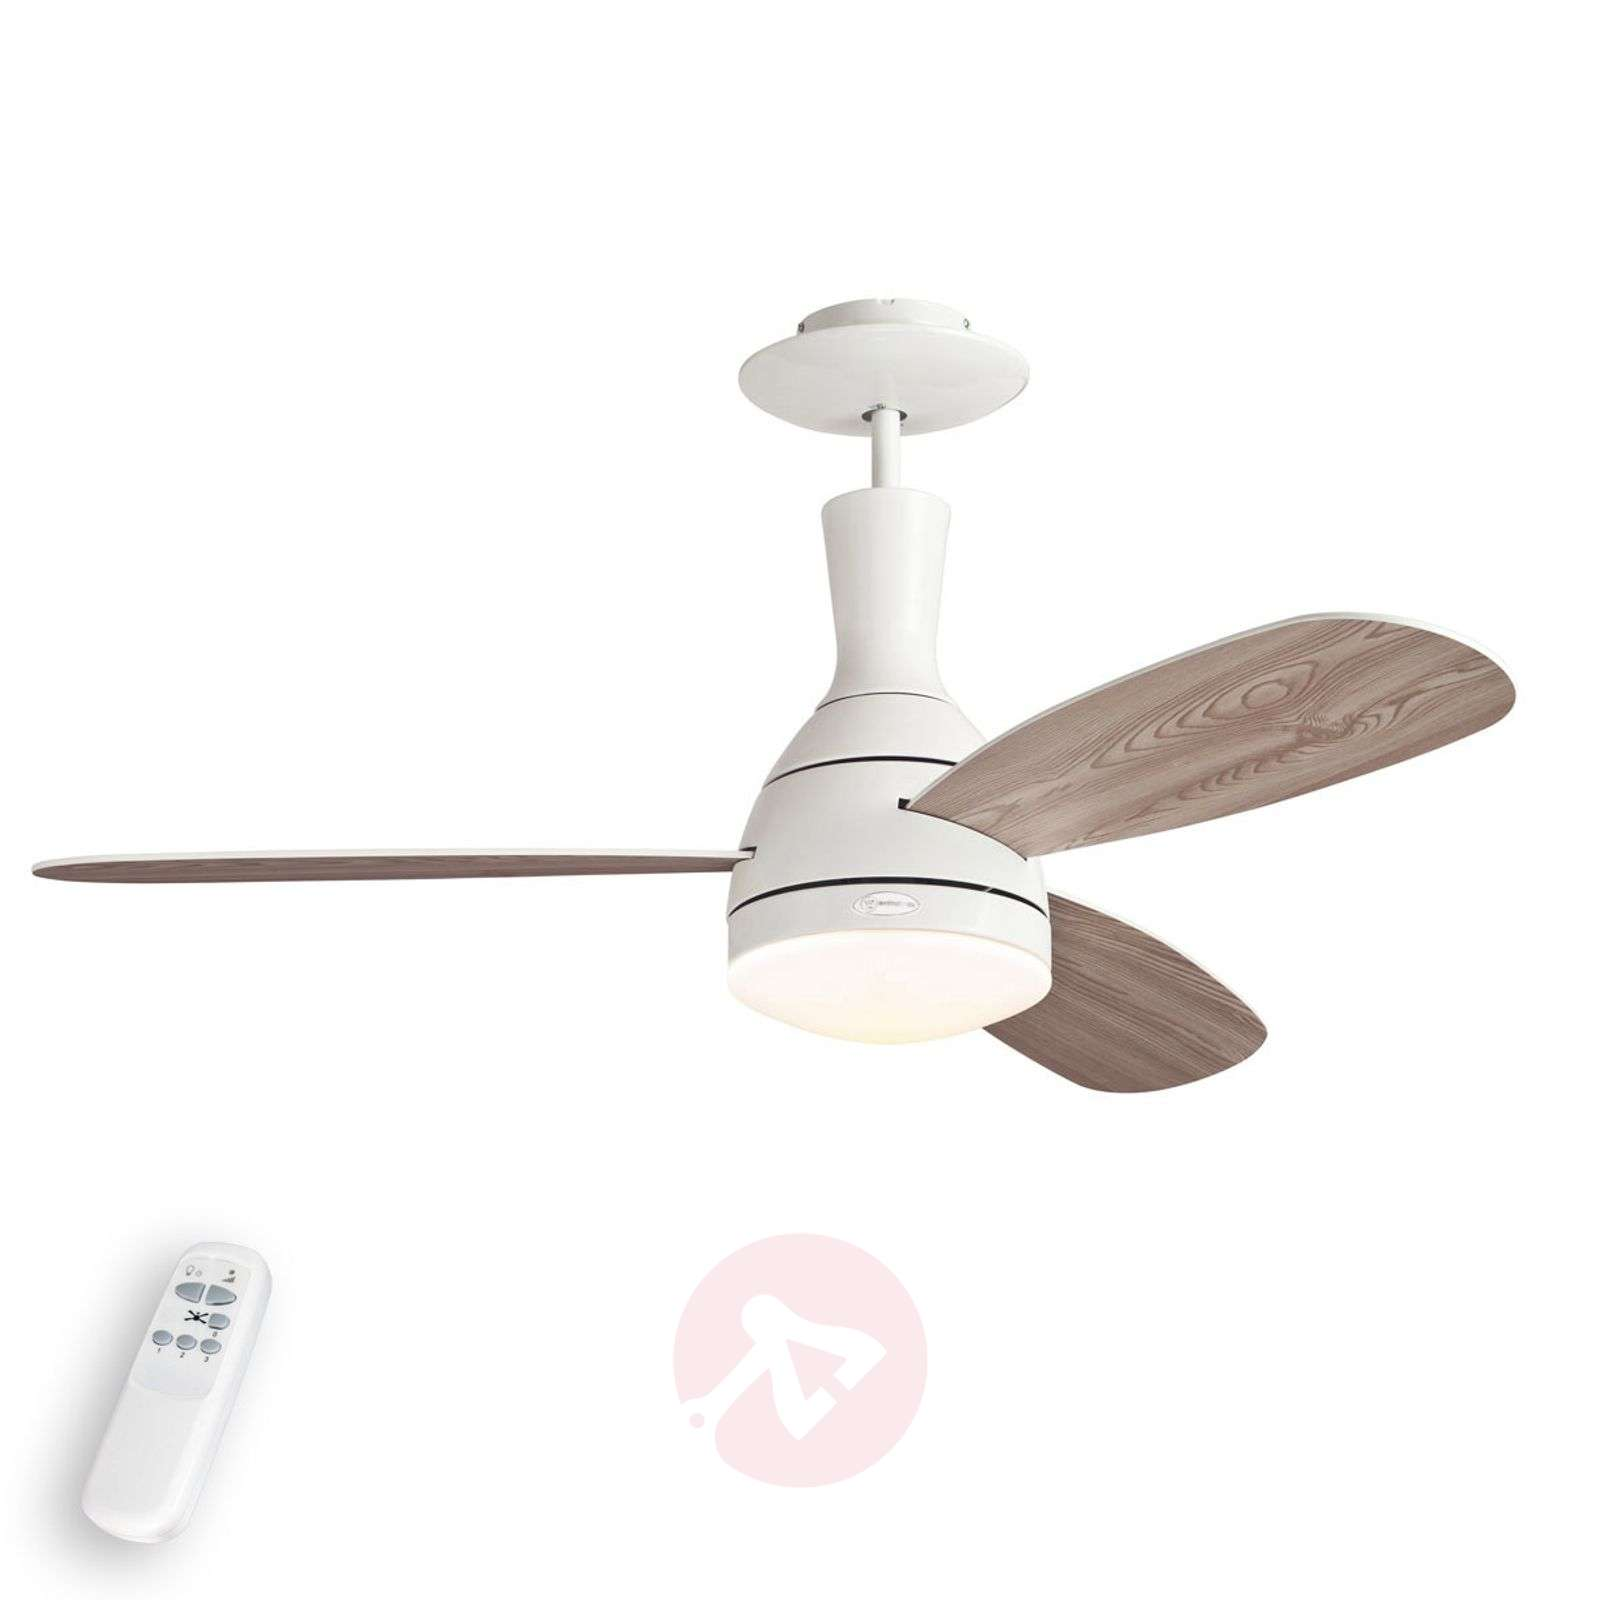 Cumulus Ceiling Fan For Summer And Winter 9602248 01